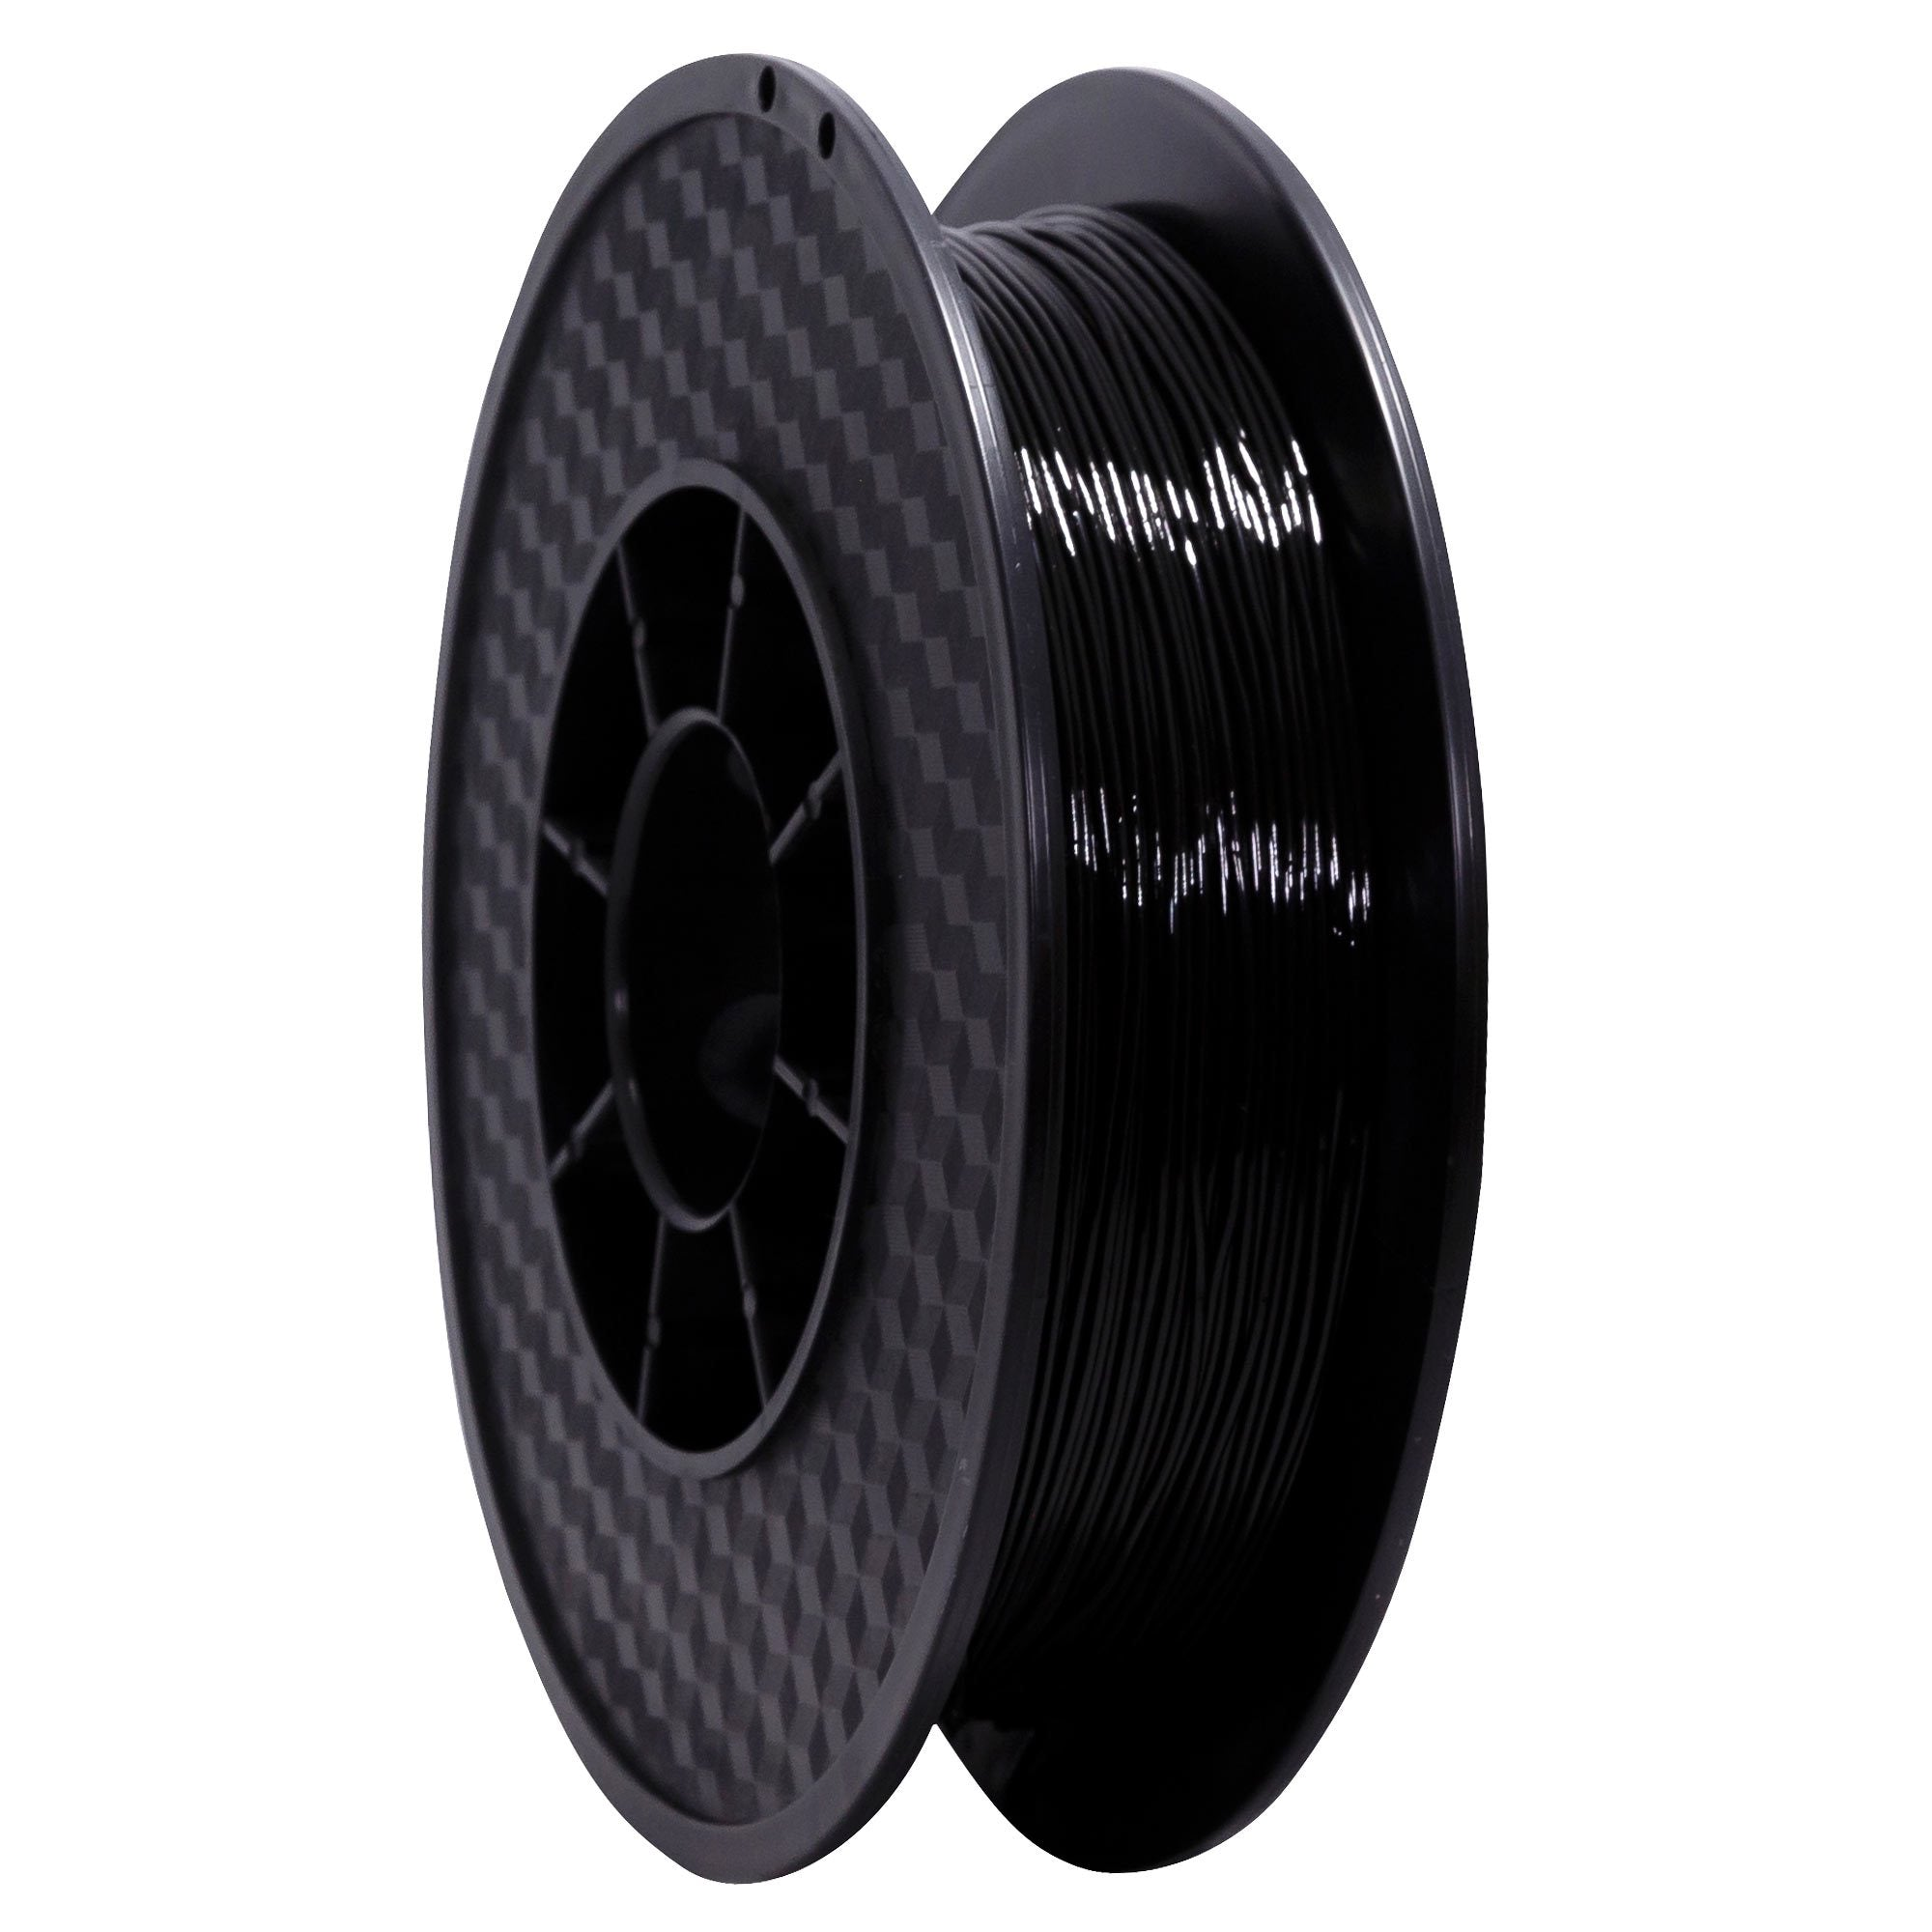 Filament TPU flexible Noir 85A Premium - 1.75mm, 0.5 Kg